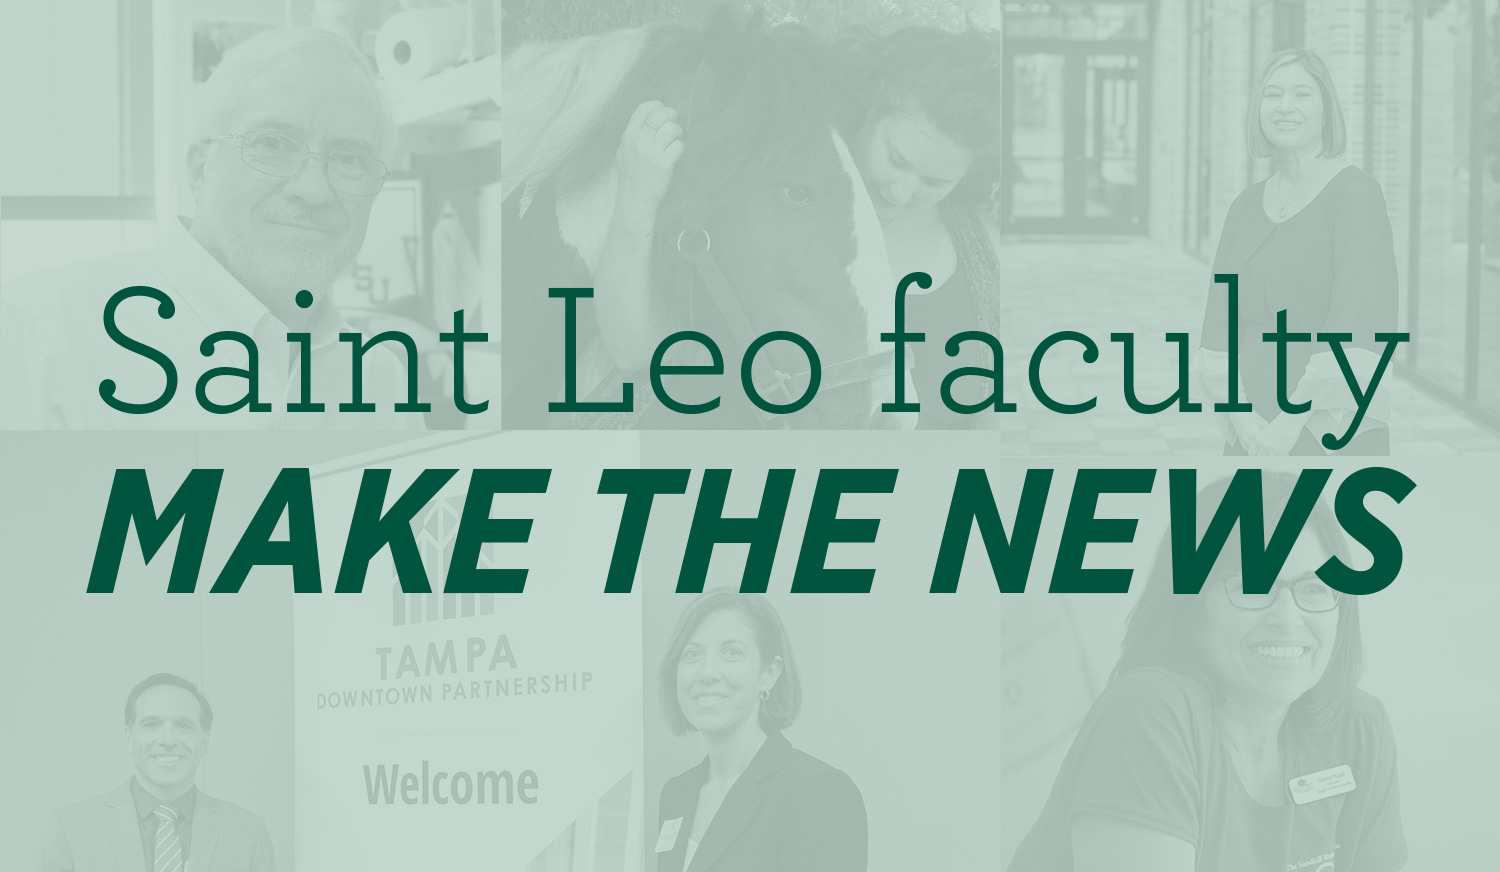 Saint Leo Faculty Make the News